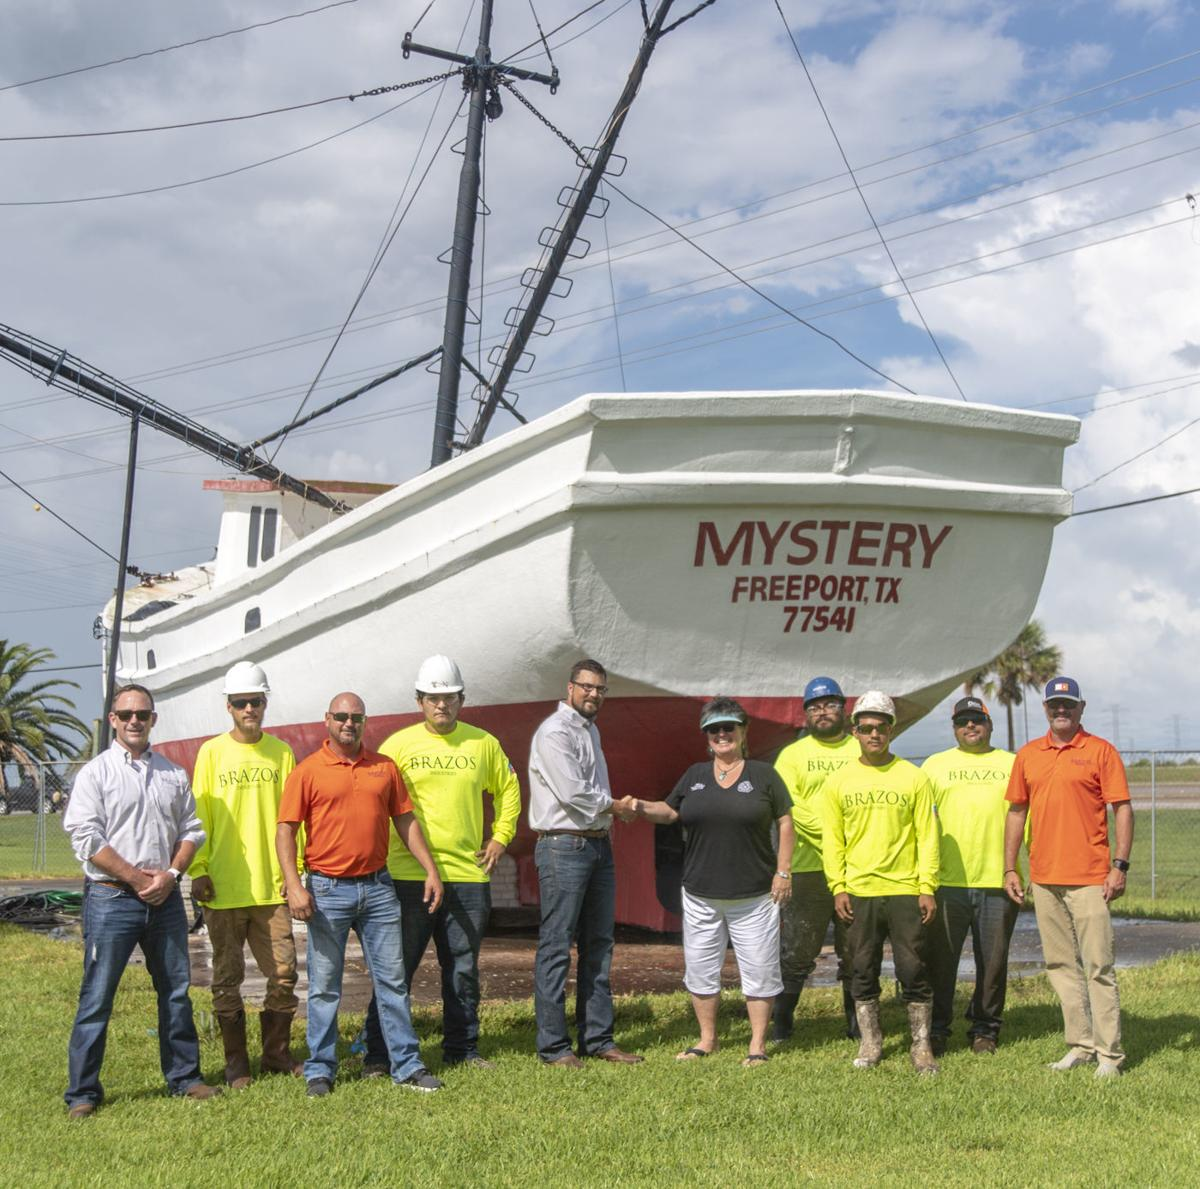 Freeport Mystery landmark getting restored to former glory